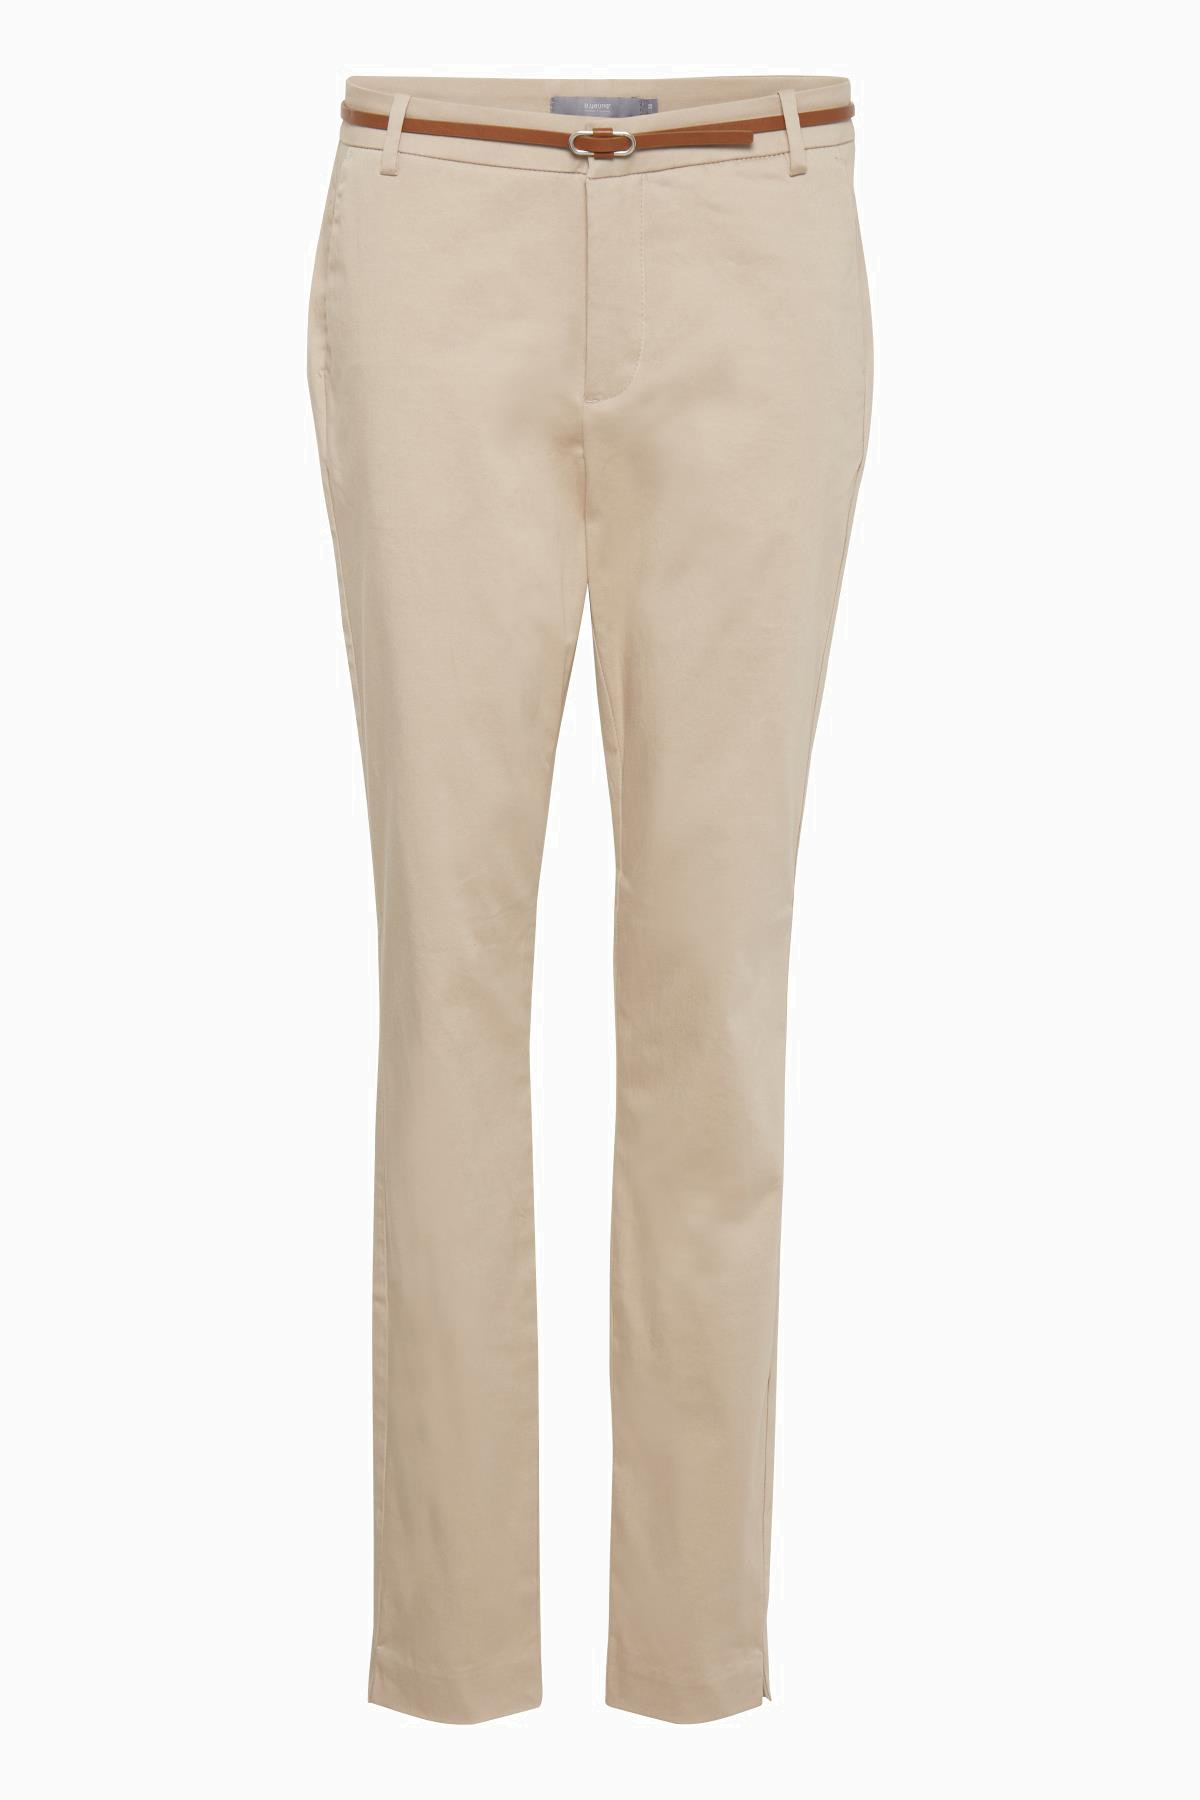 Oxford Tan Pants Suiting von b.young – Kaufen Sie Oxford Tan Pants Suiting aus Größe 34-46 hier